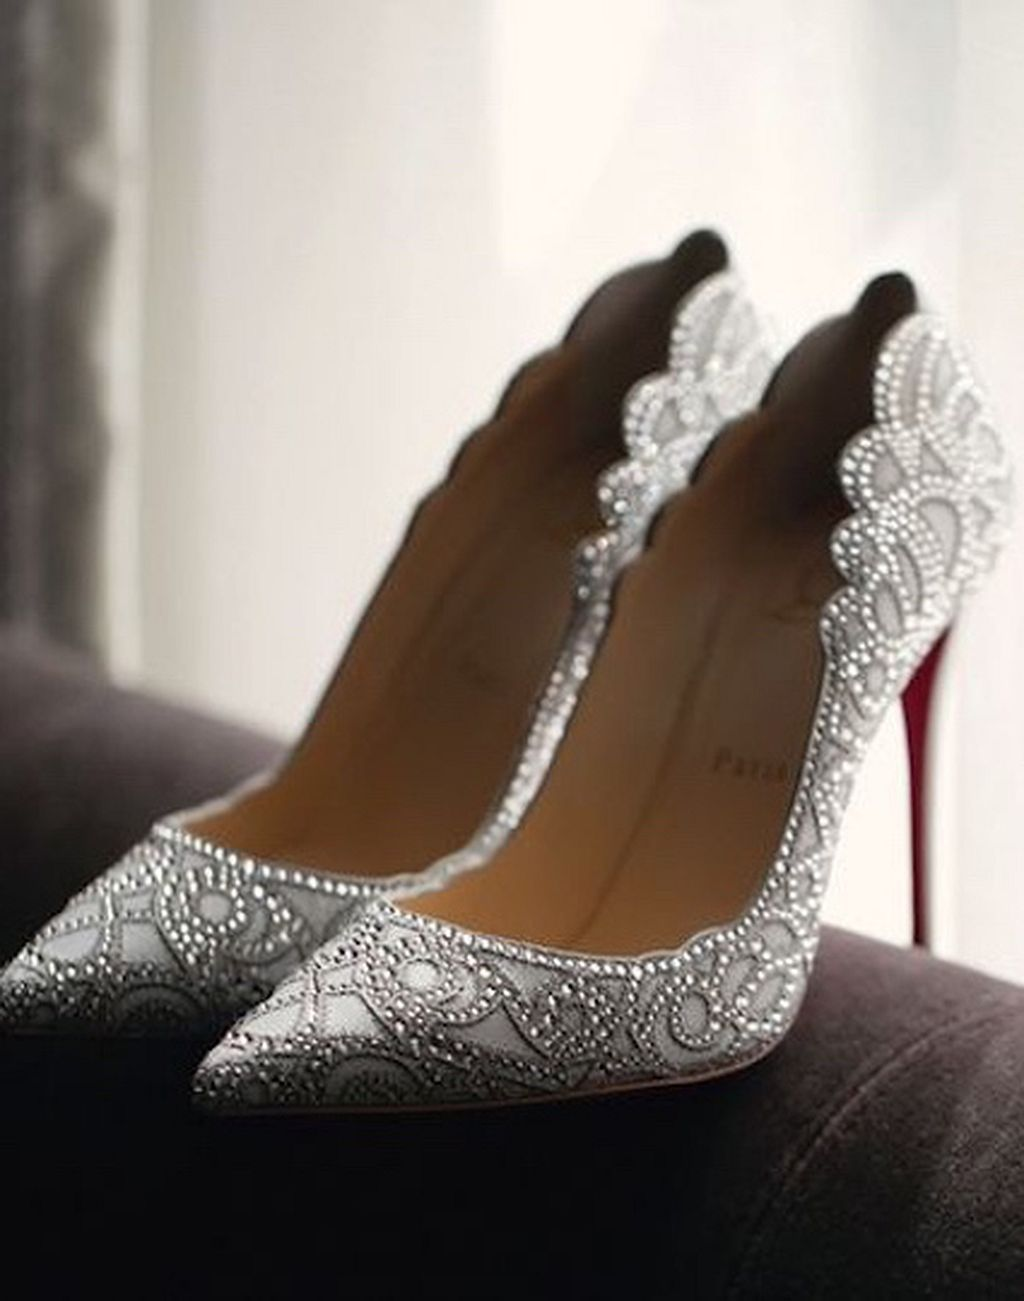 80+ The Most Comfortable Wedding Shoes Ideas | Comfortable wedding ...